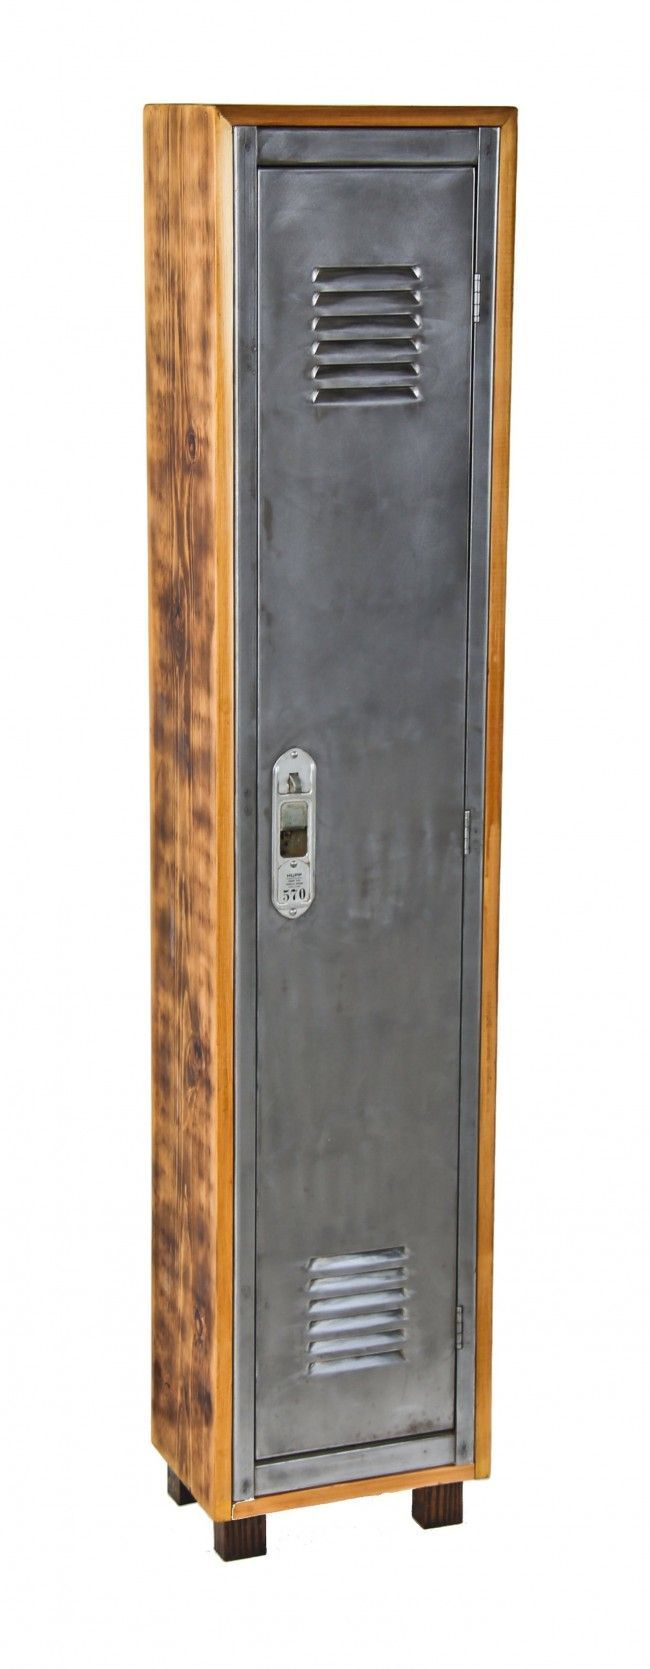 repurpose vintage locker, repurposed, transformed, rustic, industrial, furniture, diy ideas, cabinet, storage, shelves #VintageIndustrialFurniture #vintageindustrialfurniture